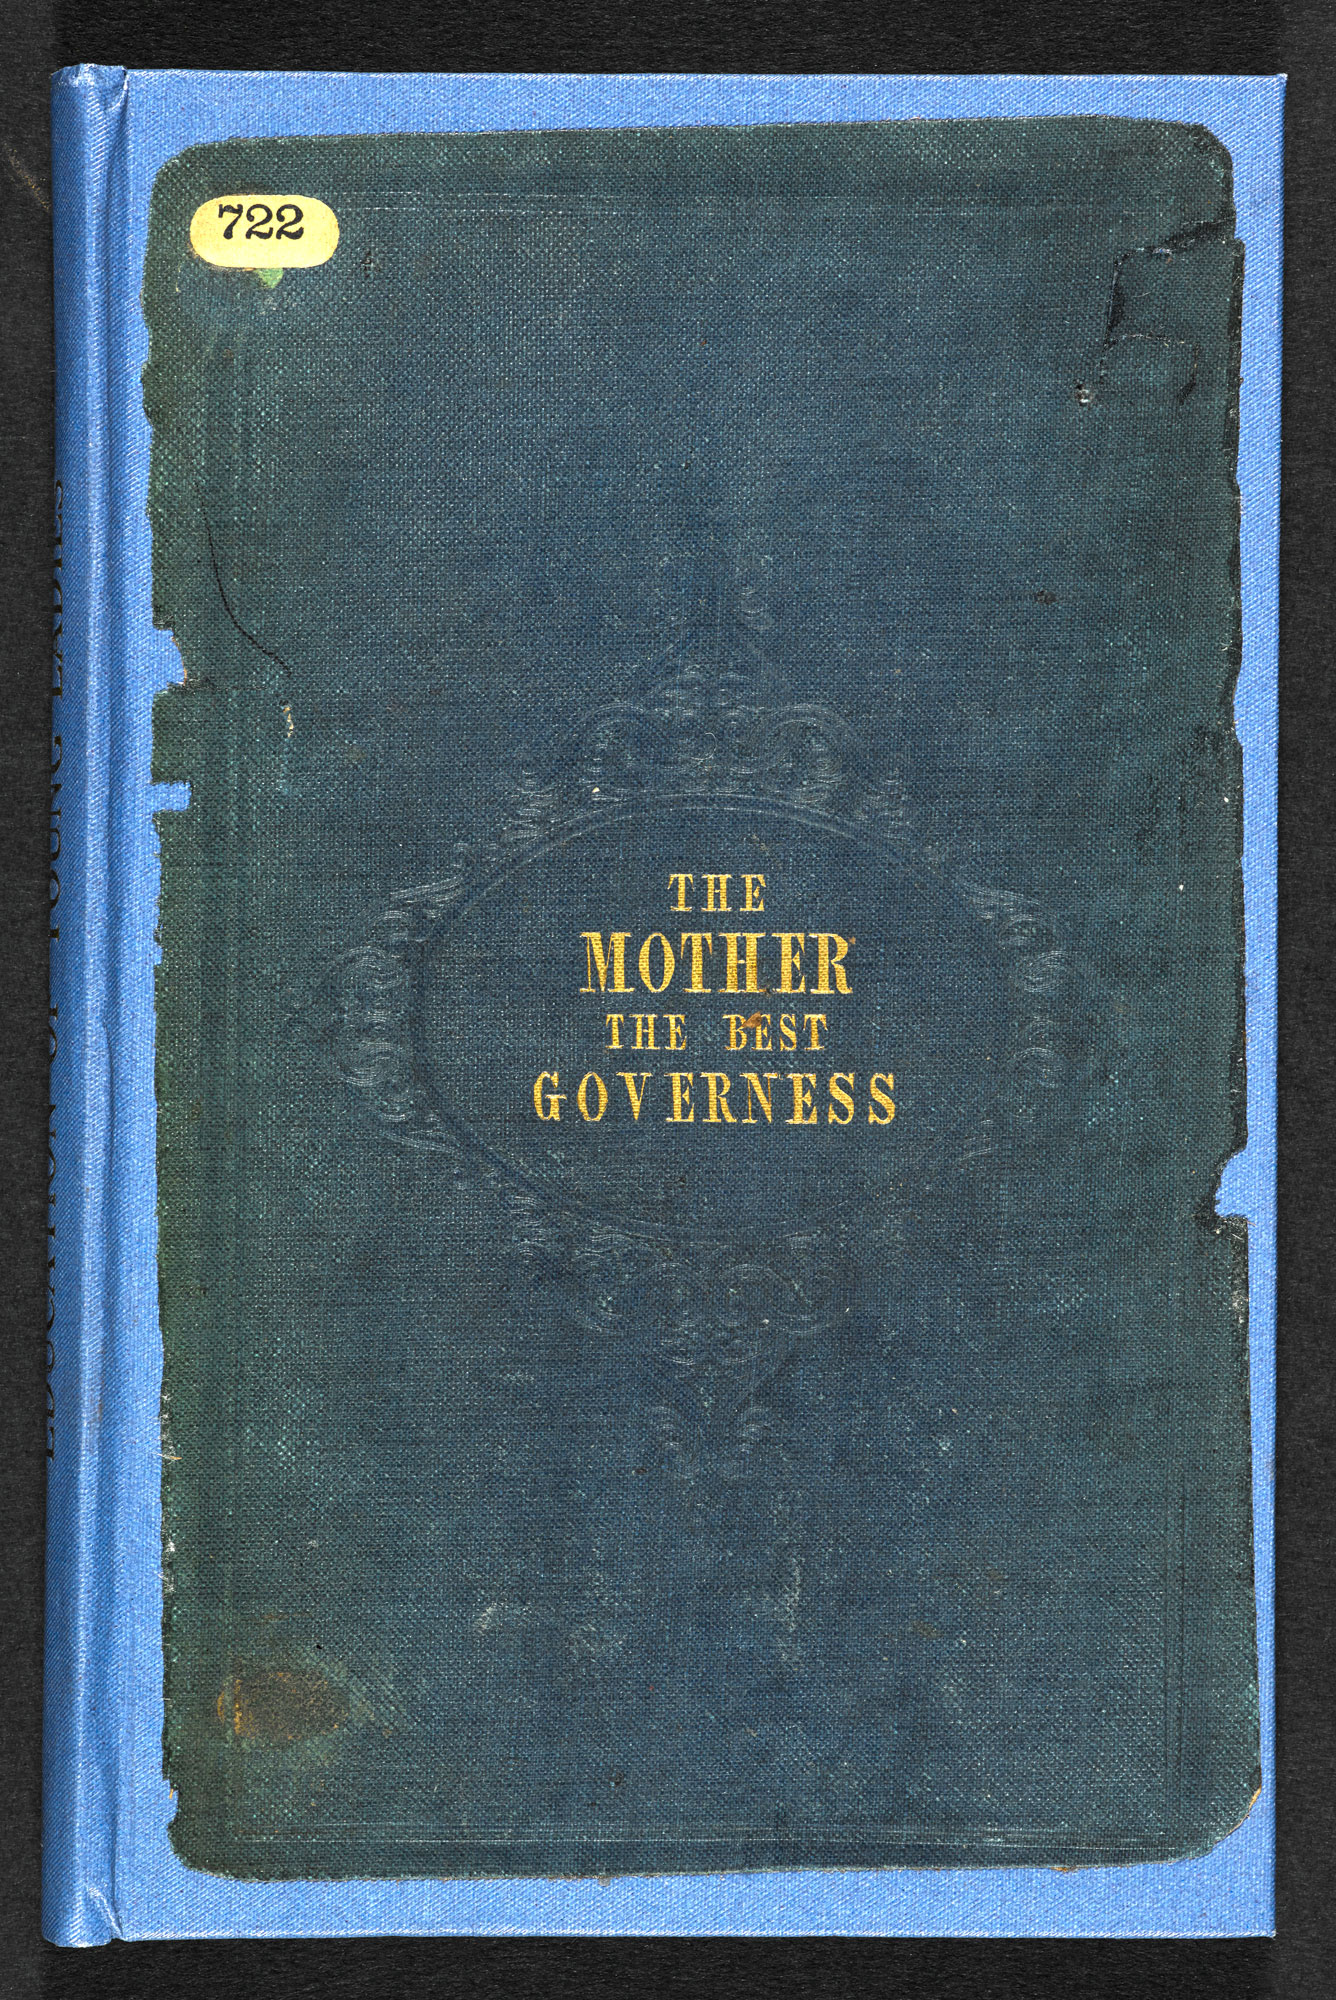 The Mother the Best Governess [page: front cover]